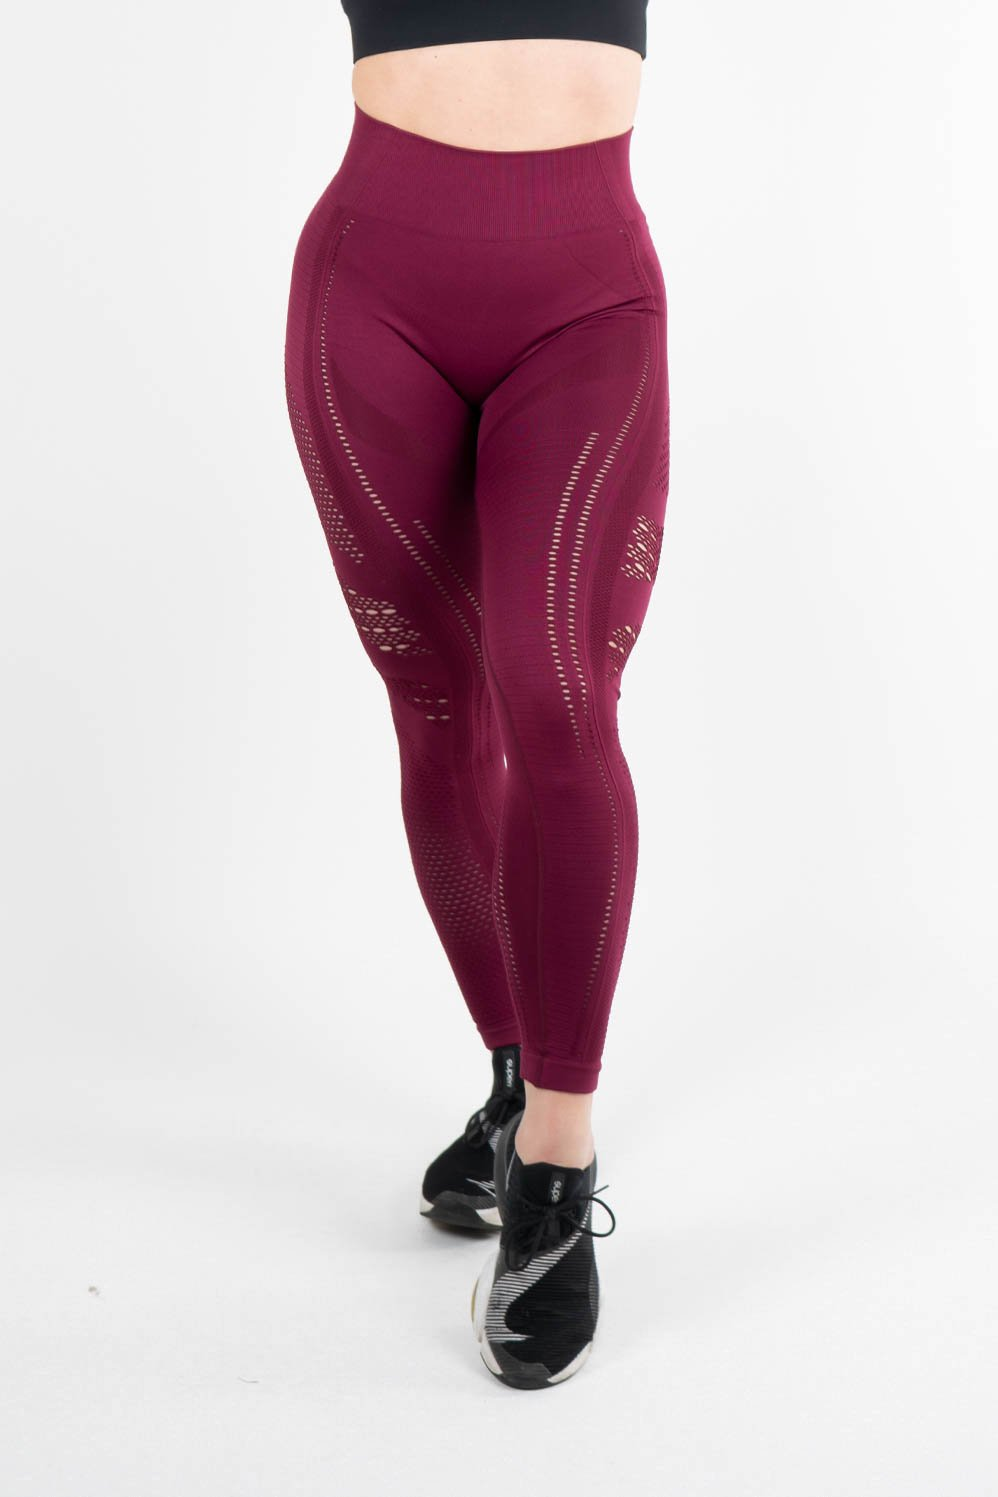 Zoov Legging Burgundy - Own-Wear